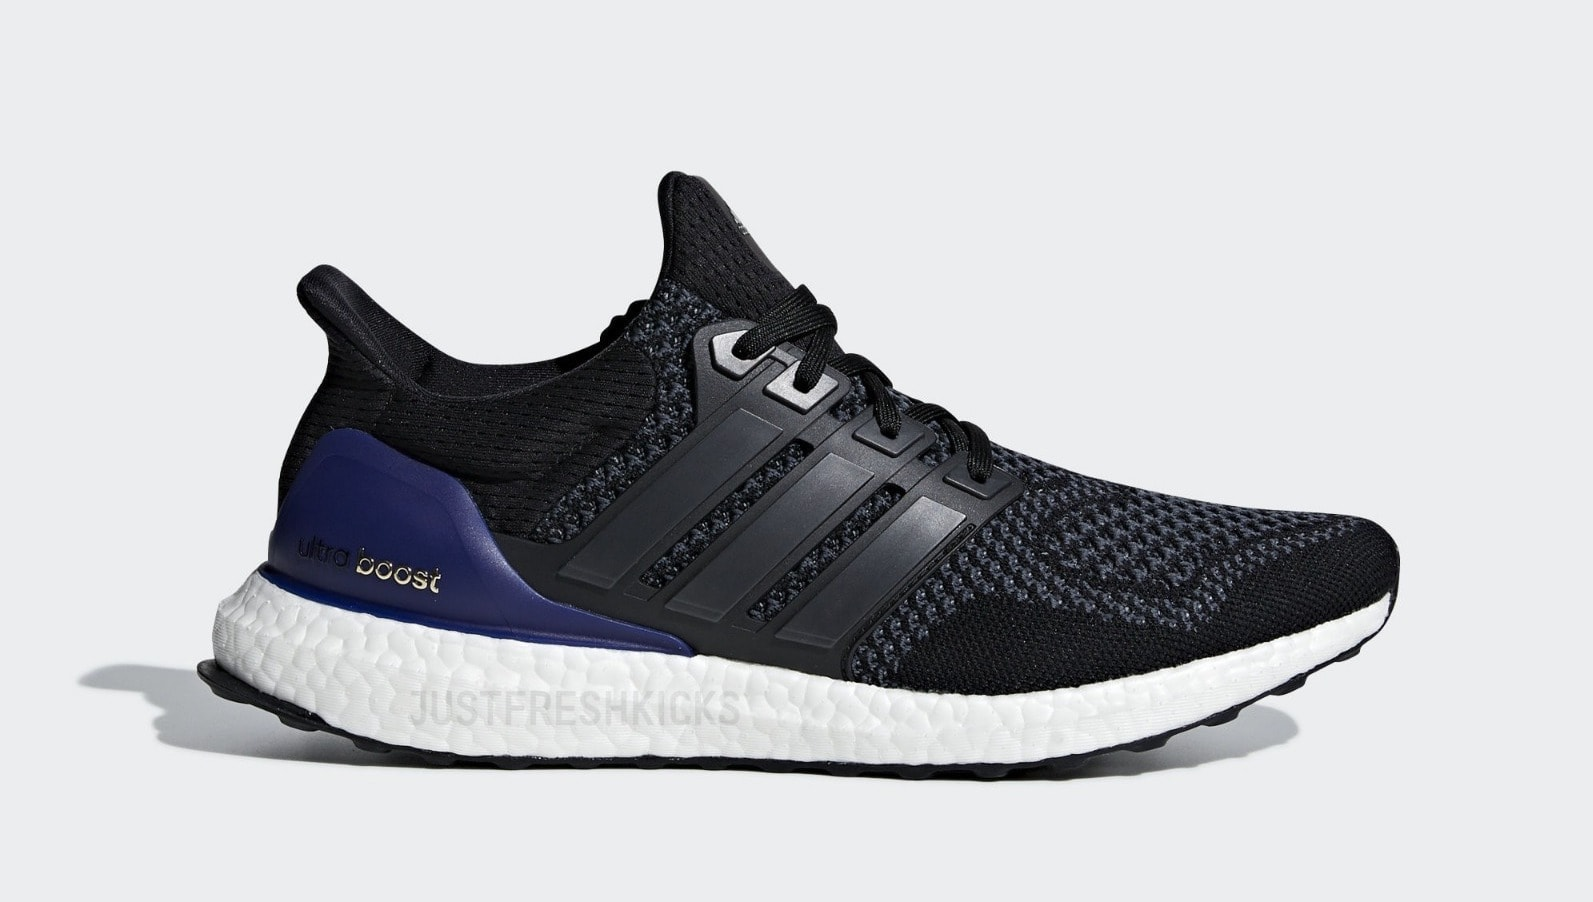 promo code eb5f7 1f9d9 The adidas Ultra Boost Returns in its Original 1.0 Primeknit Pattern This  Winter